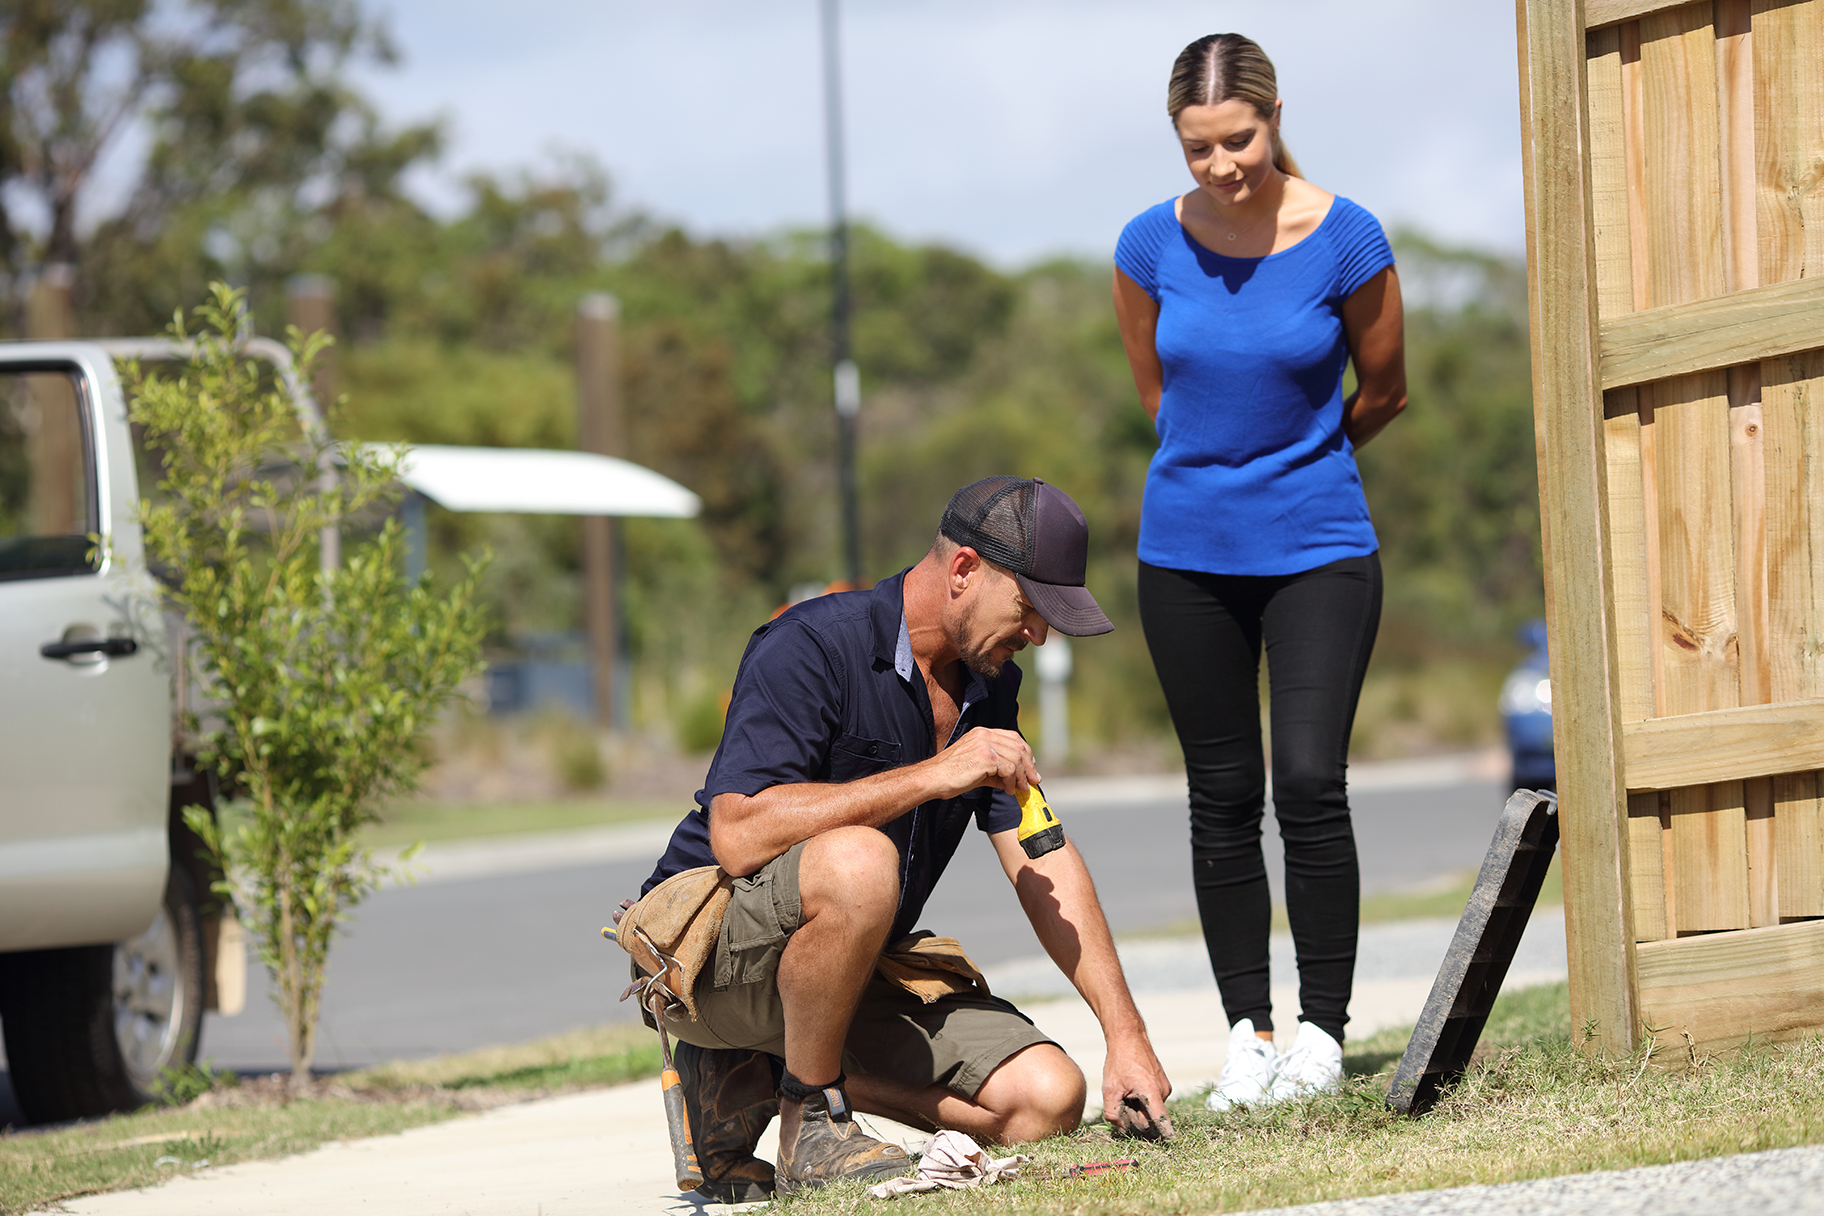 Plumber and lady looking at water meter